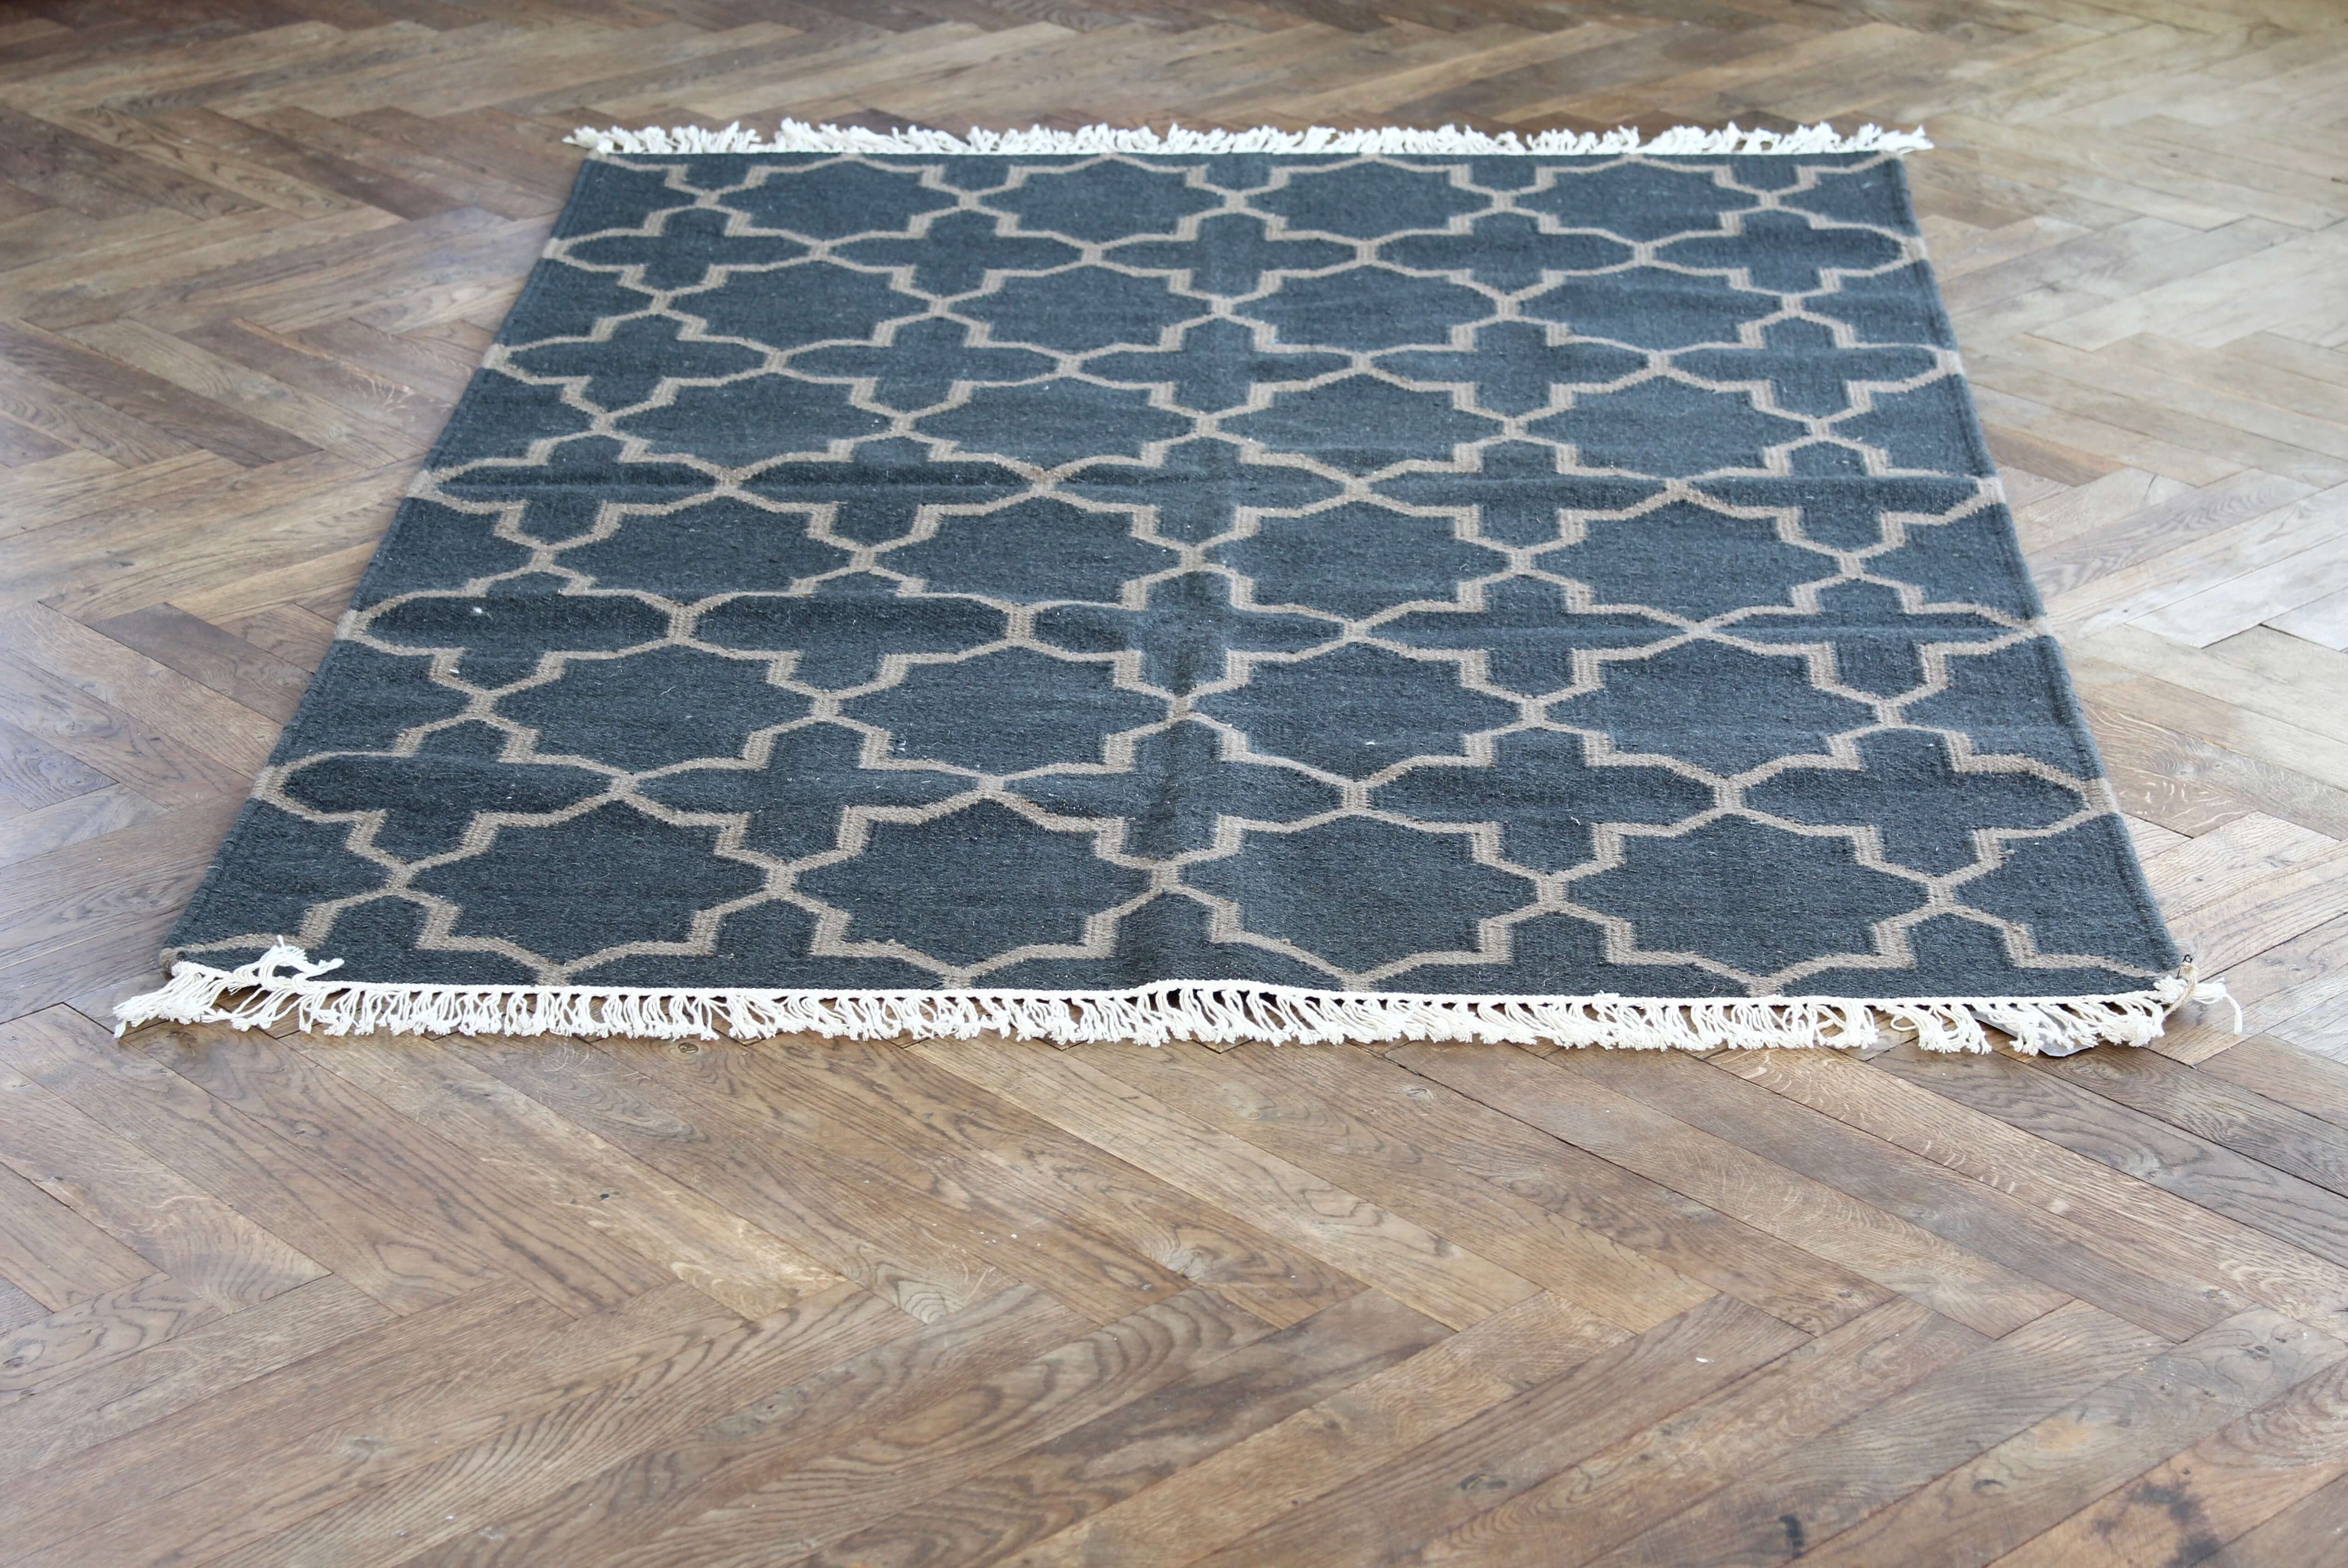 Nomad Living graphic rug charcoal 180*115